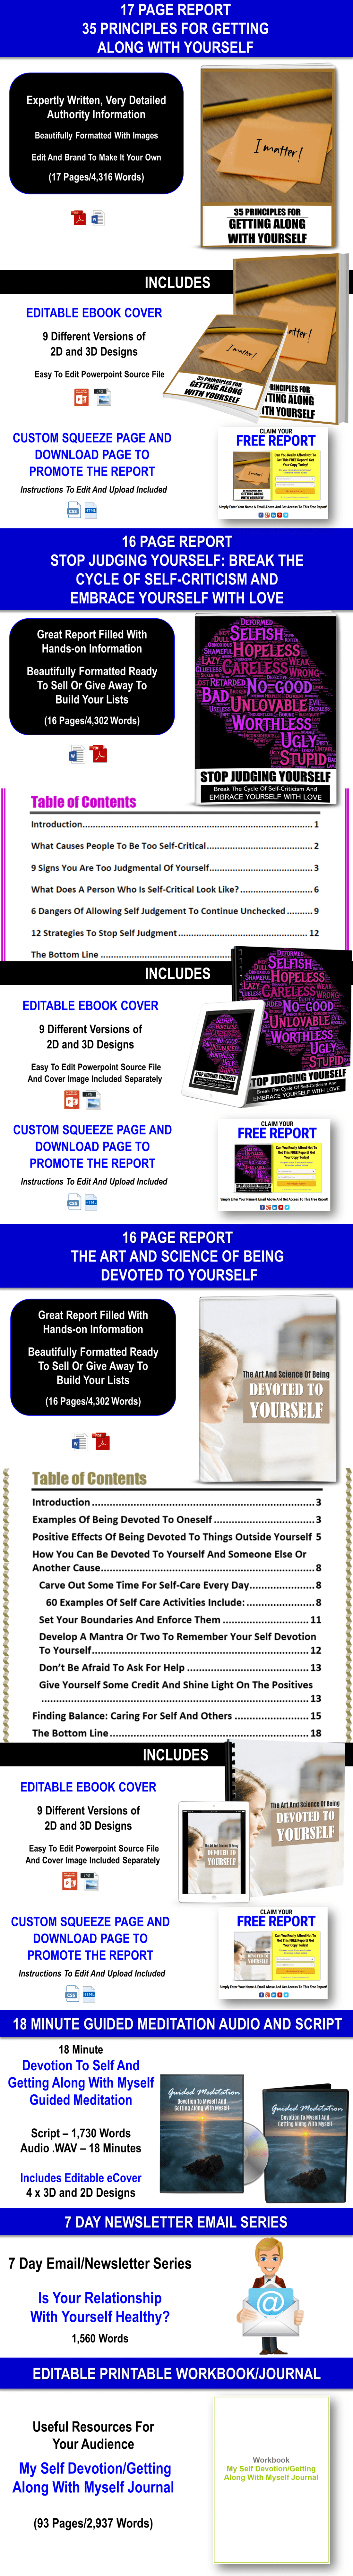 Get Along With Yourself And Devotion To Yourself Content Pack With PLR Rights